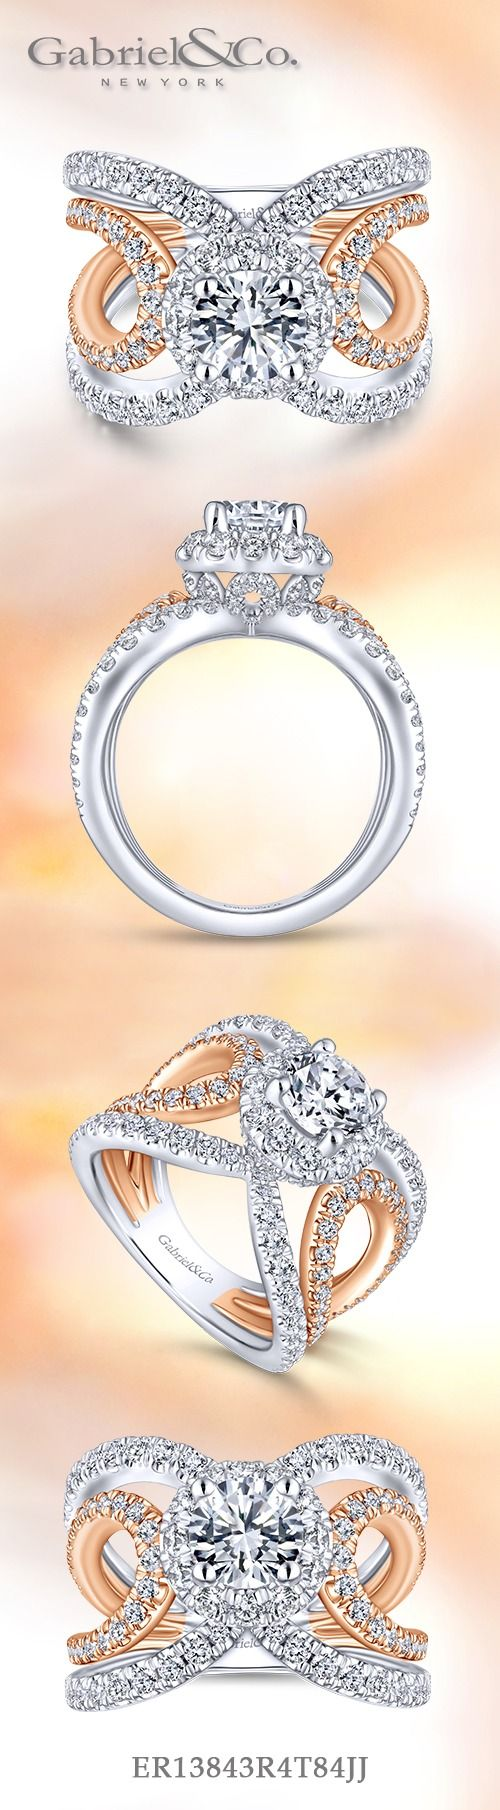 gabriel ny voted 1 most preferred fine jewelry and bridal brand 18k white